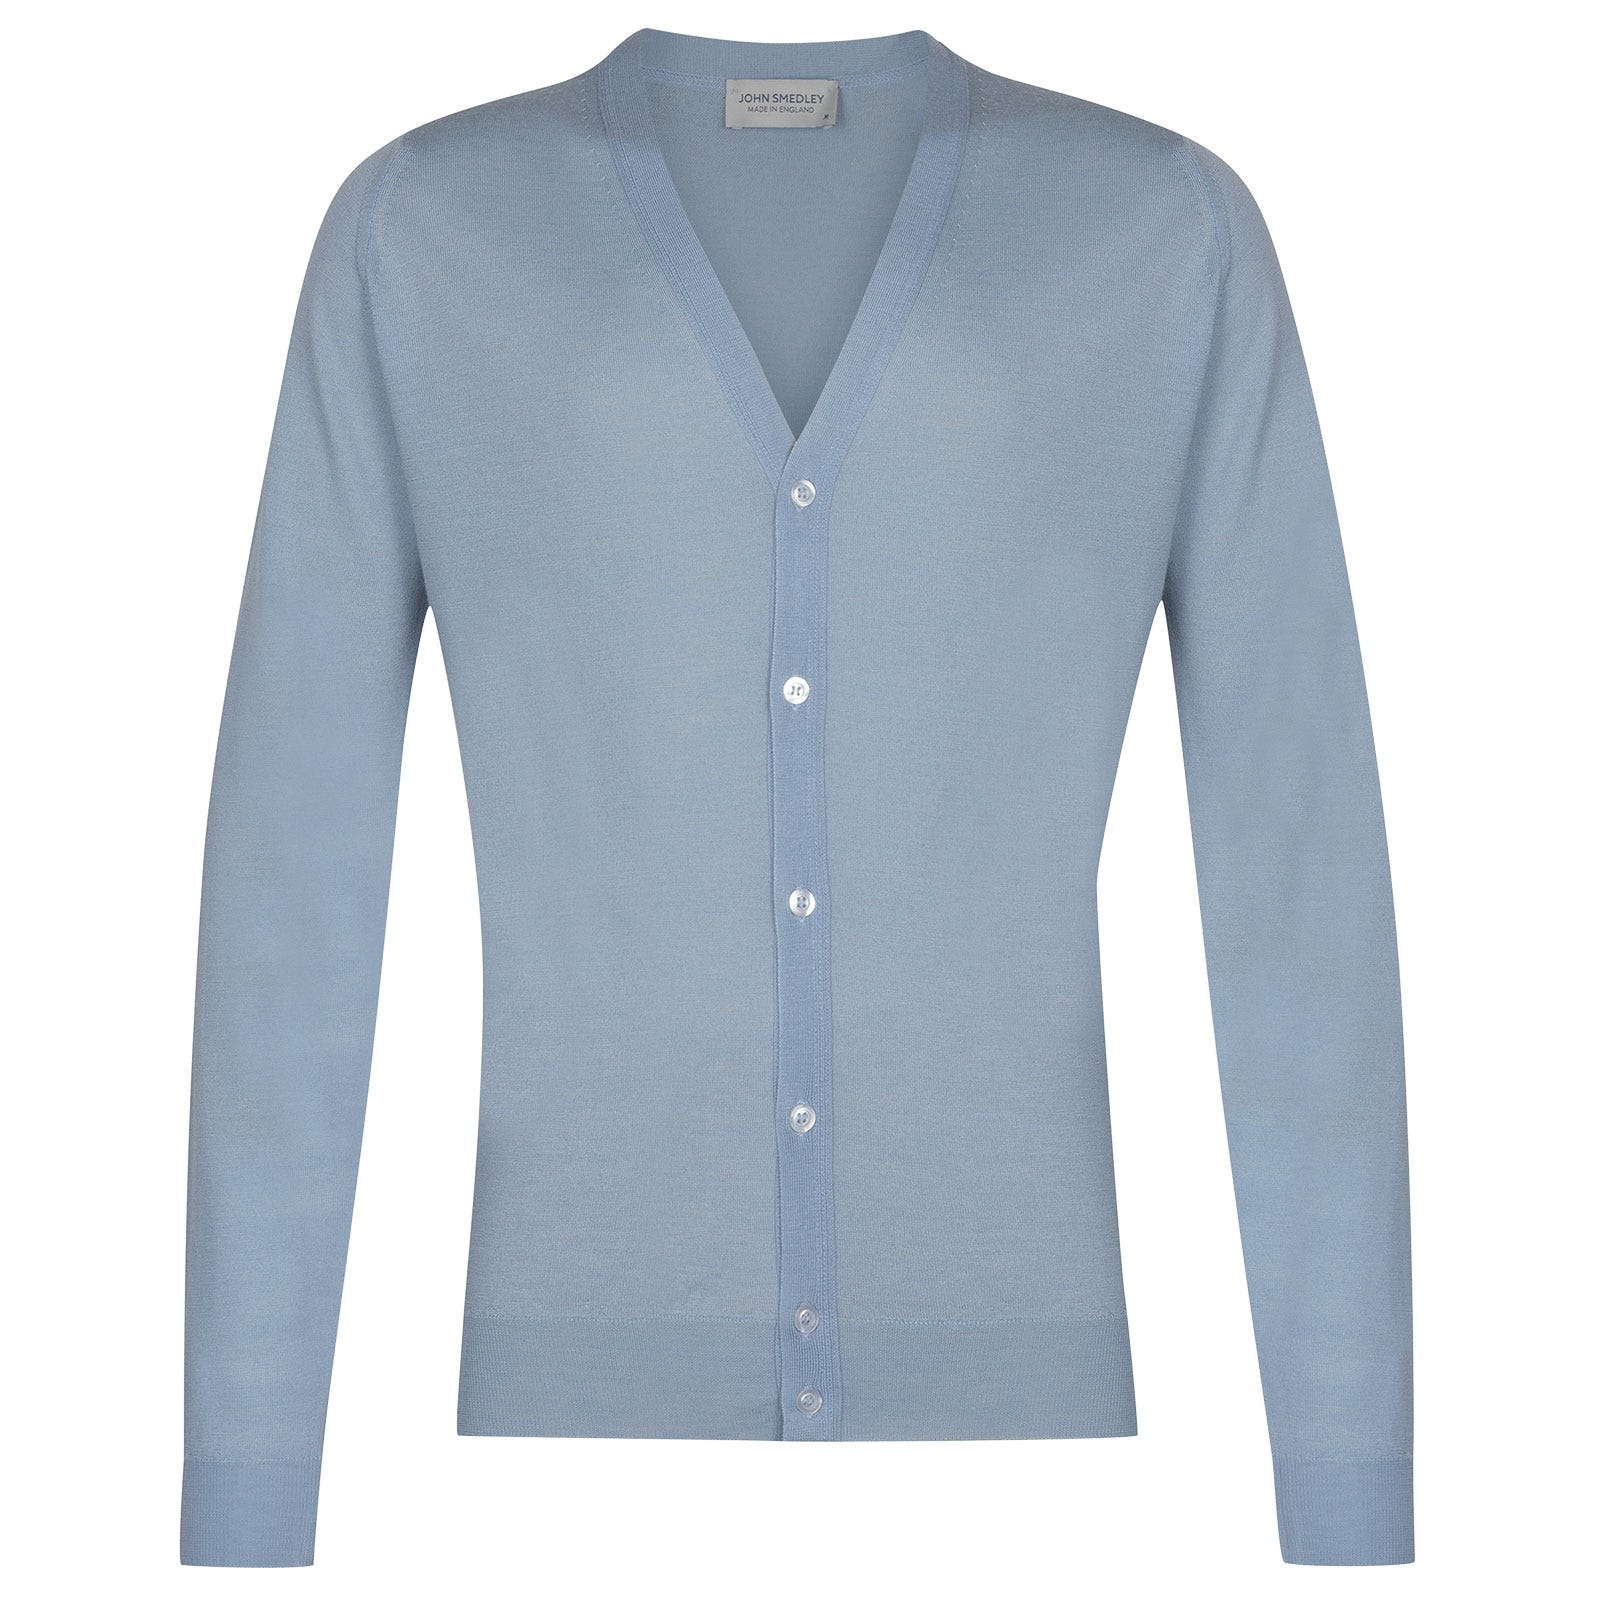 John Smedley Petworth in Dusk Blue Cardigan-SML